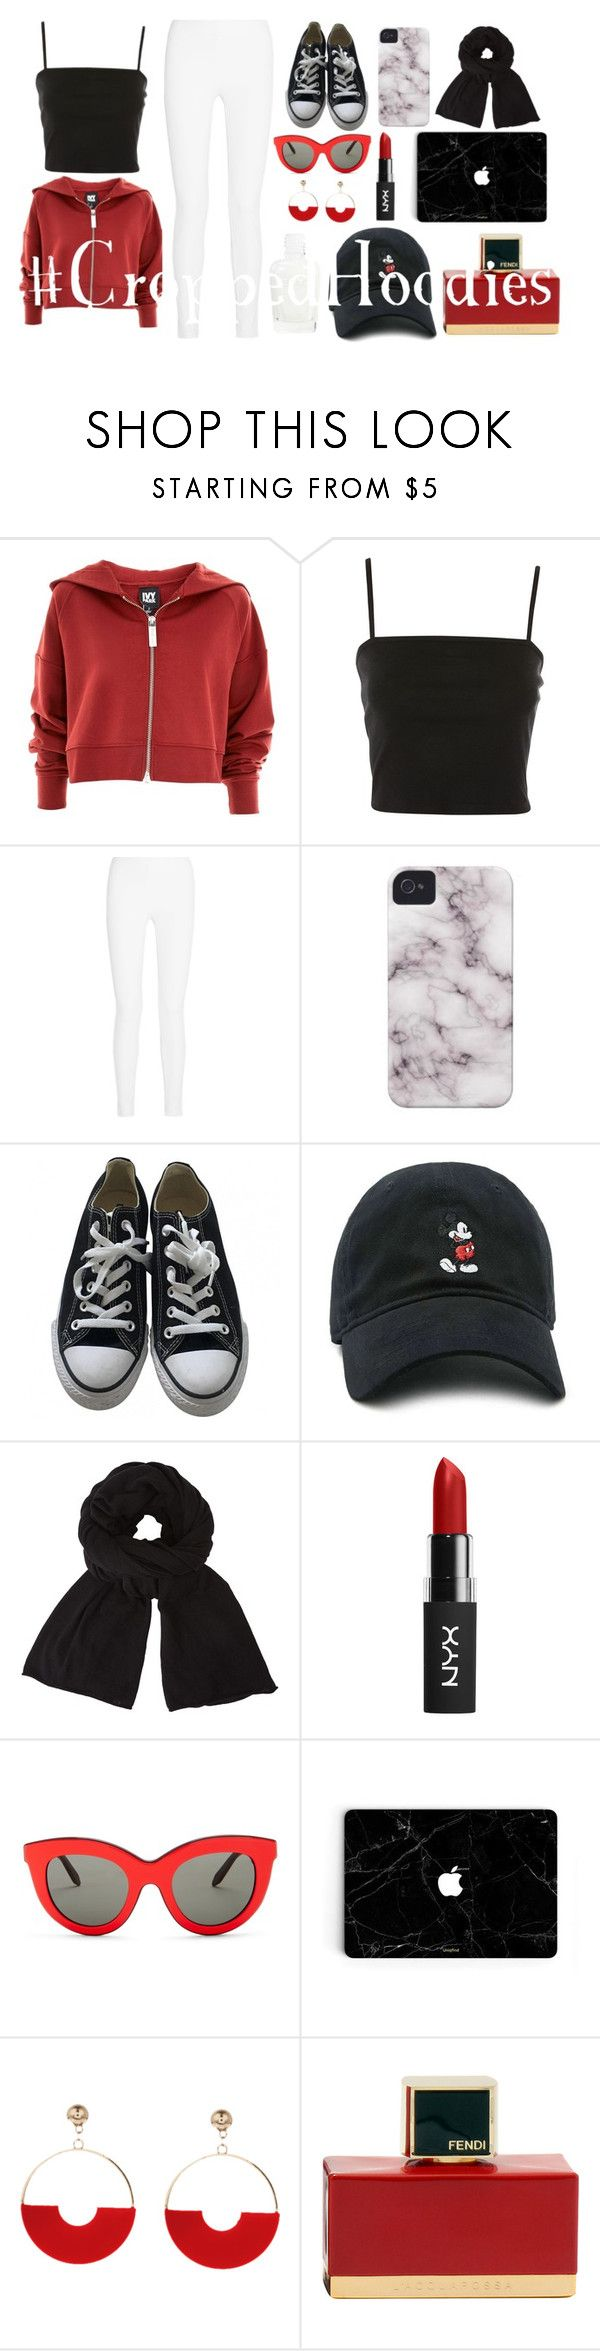 """""""Cropped Hoodies 9"""" by sophia-sherro ❤ liked on Polyvore featuring Ivy Park, Topshop, Joseph, Converse, Forever 21, John Lewis, Victoria Beckham and Fendi"""